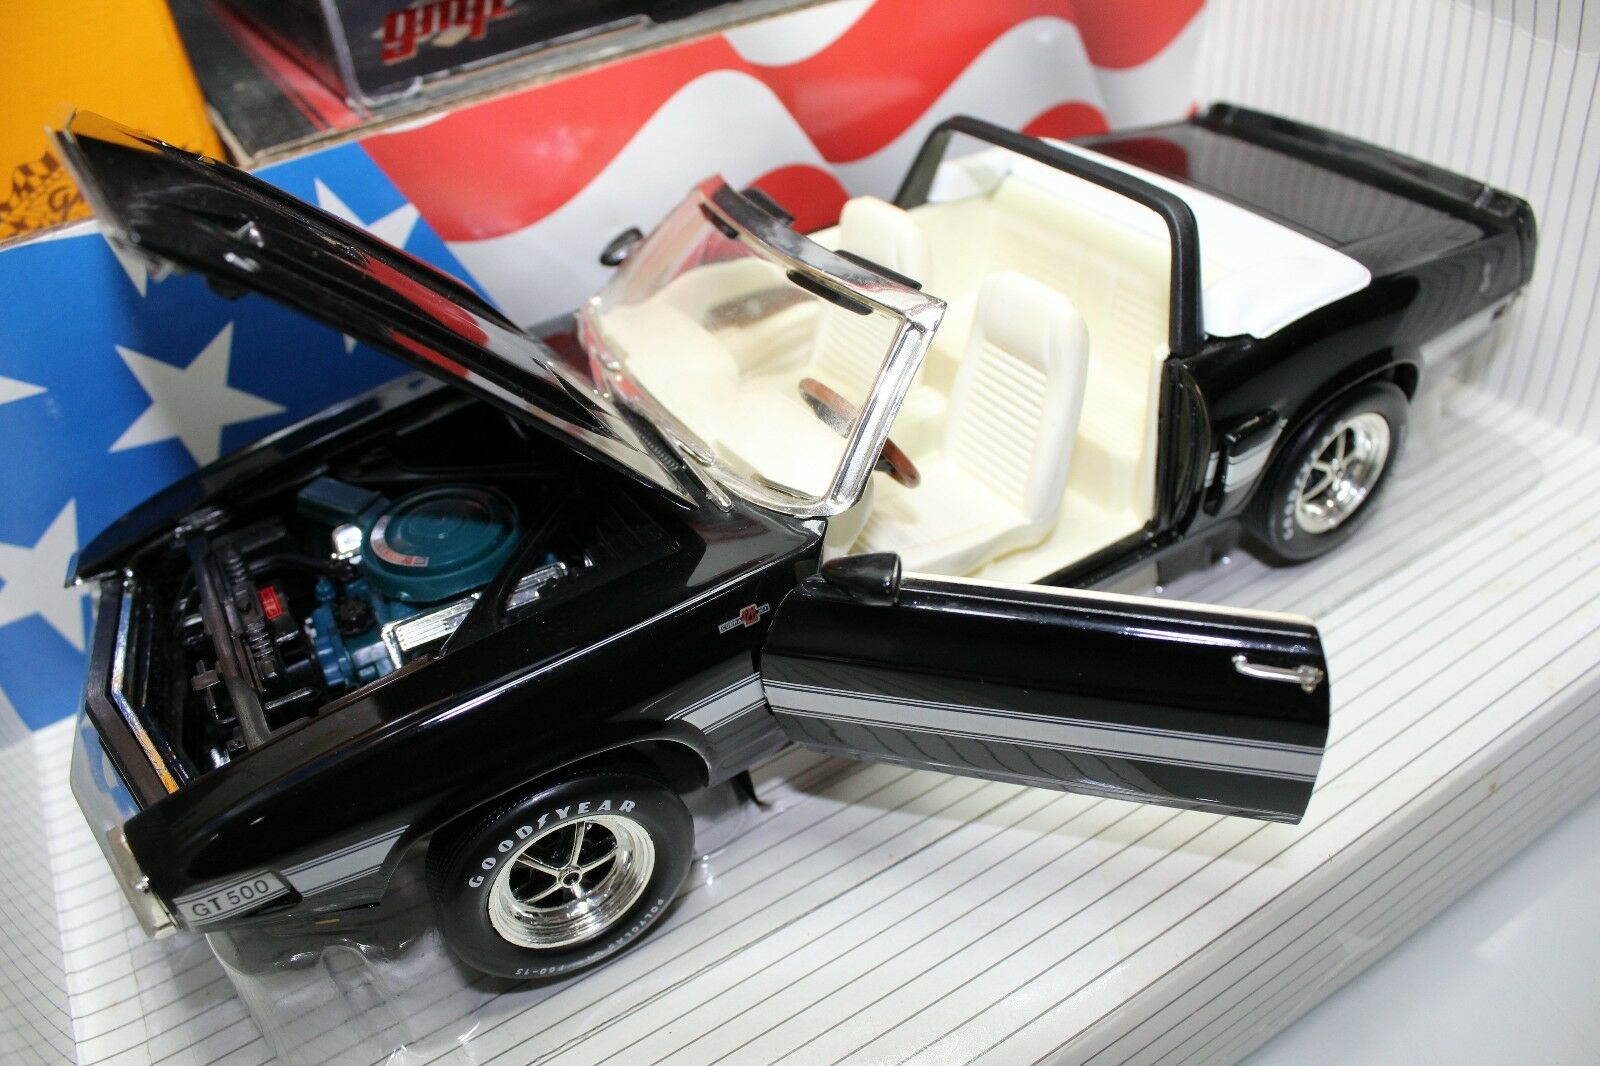 Ertl 1 18 Scale American Muscle 1969 Shelby GT-500 converdeible (nero biancao Int)